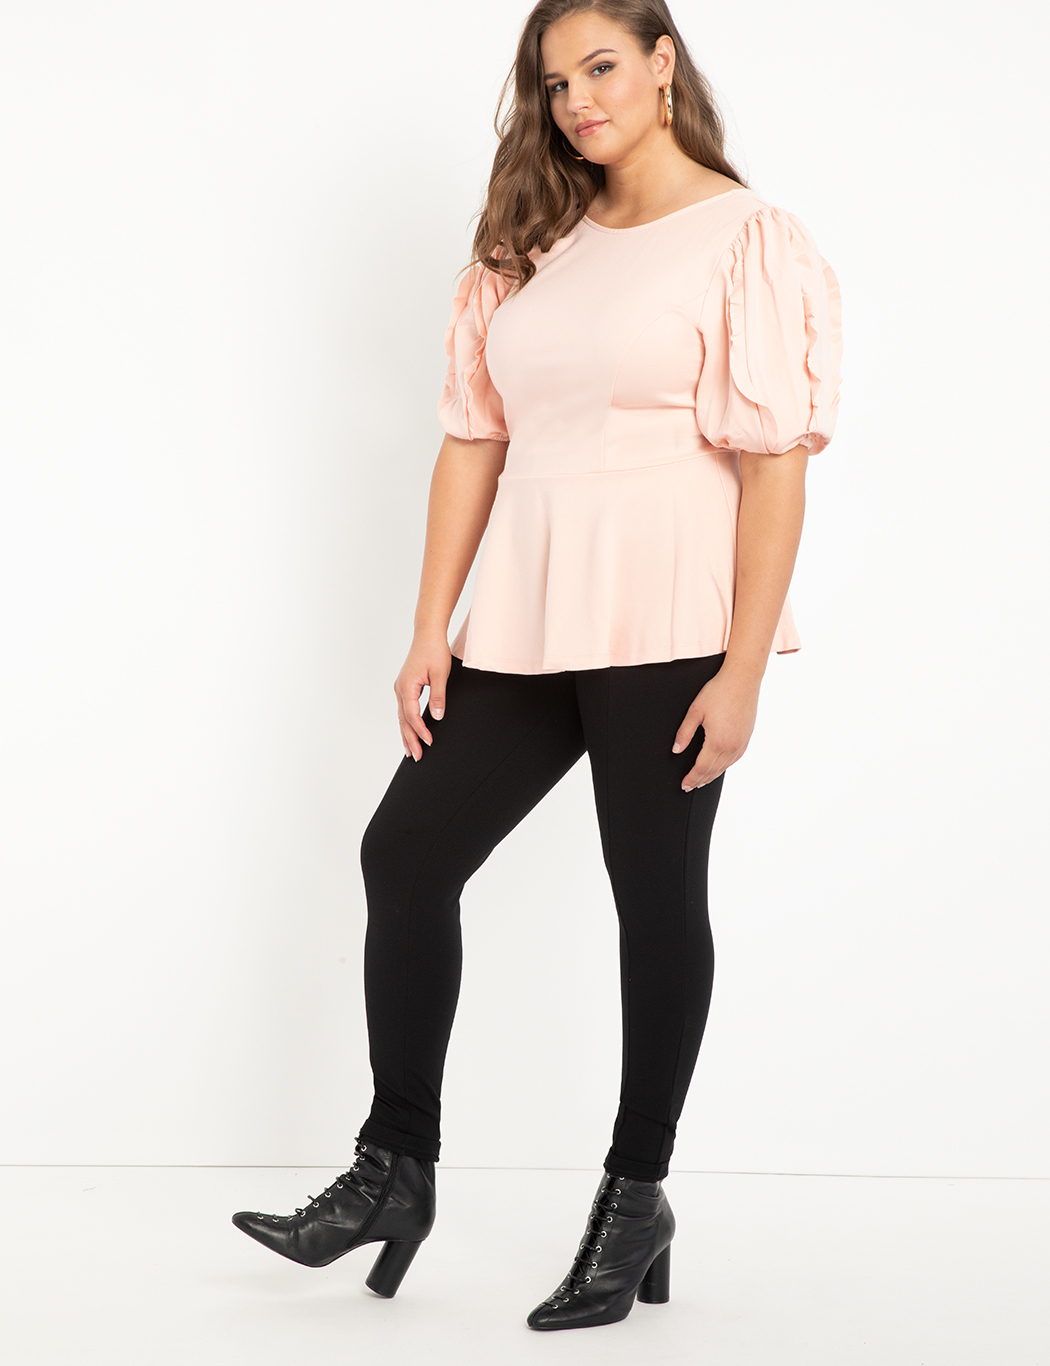 Ruffle Sleeve Peplum Top